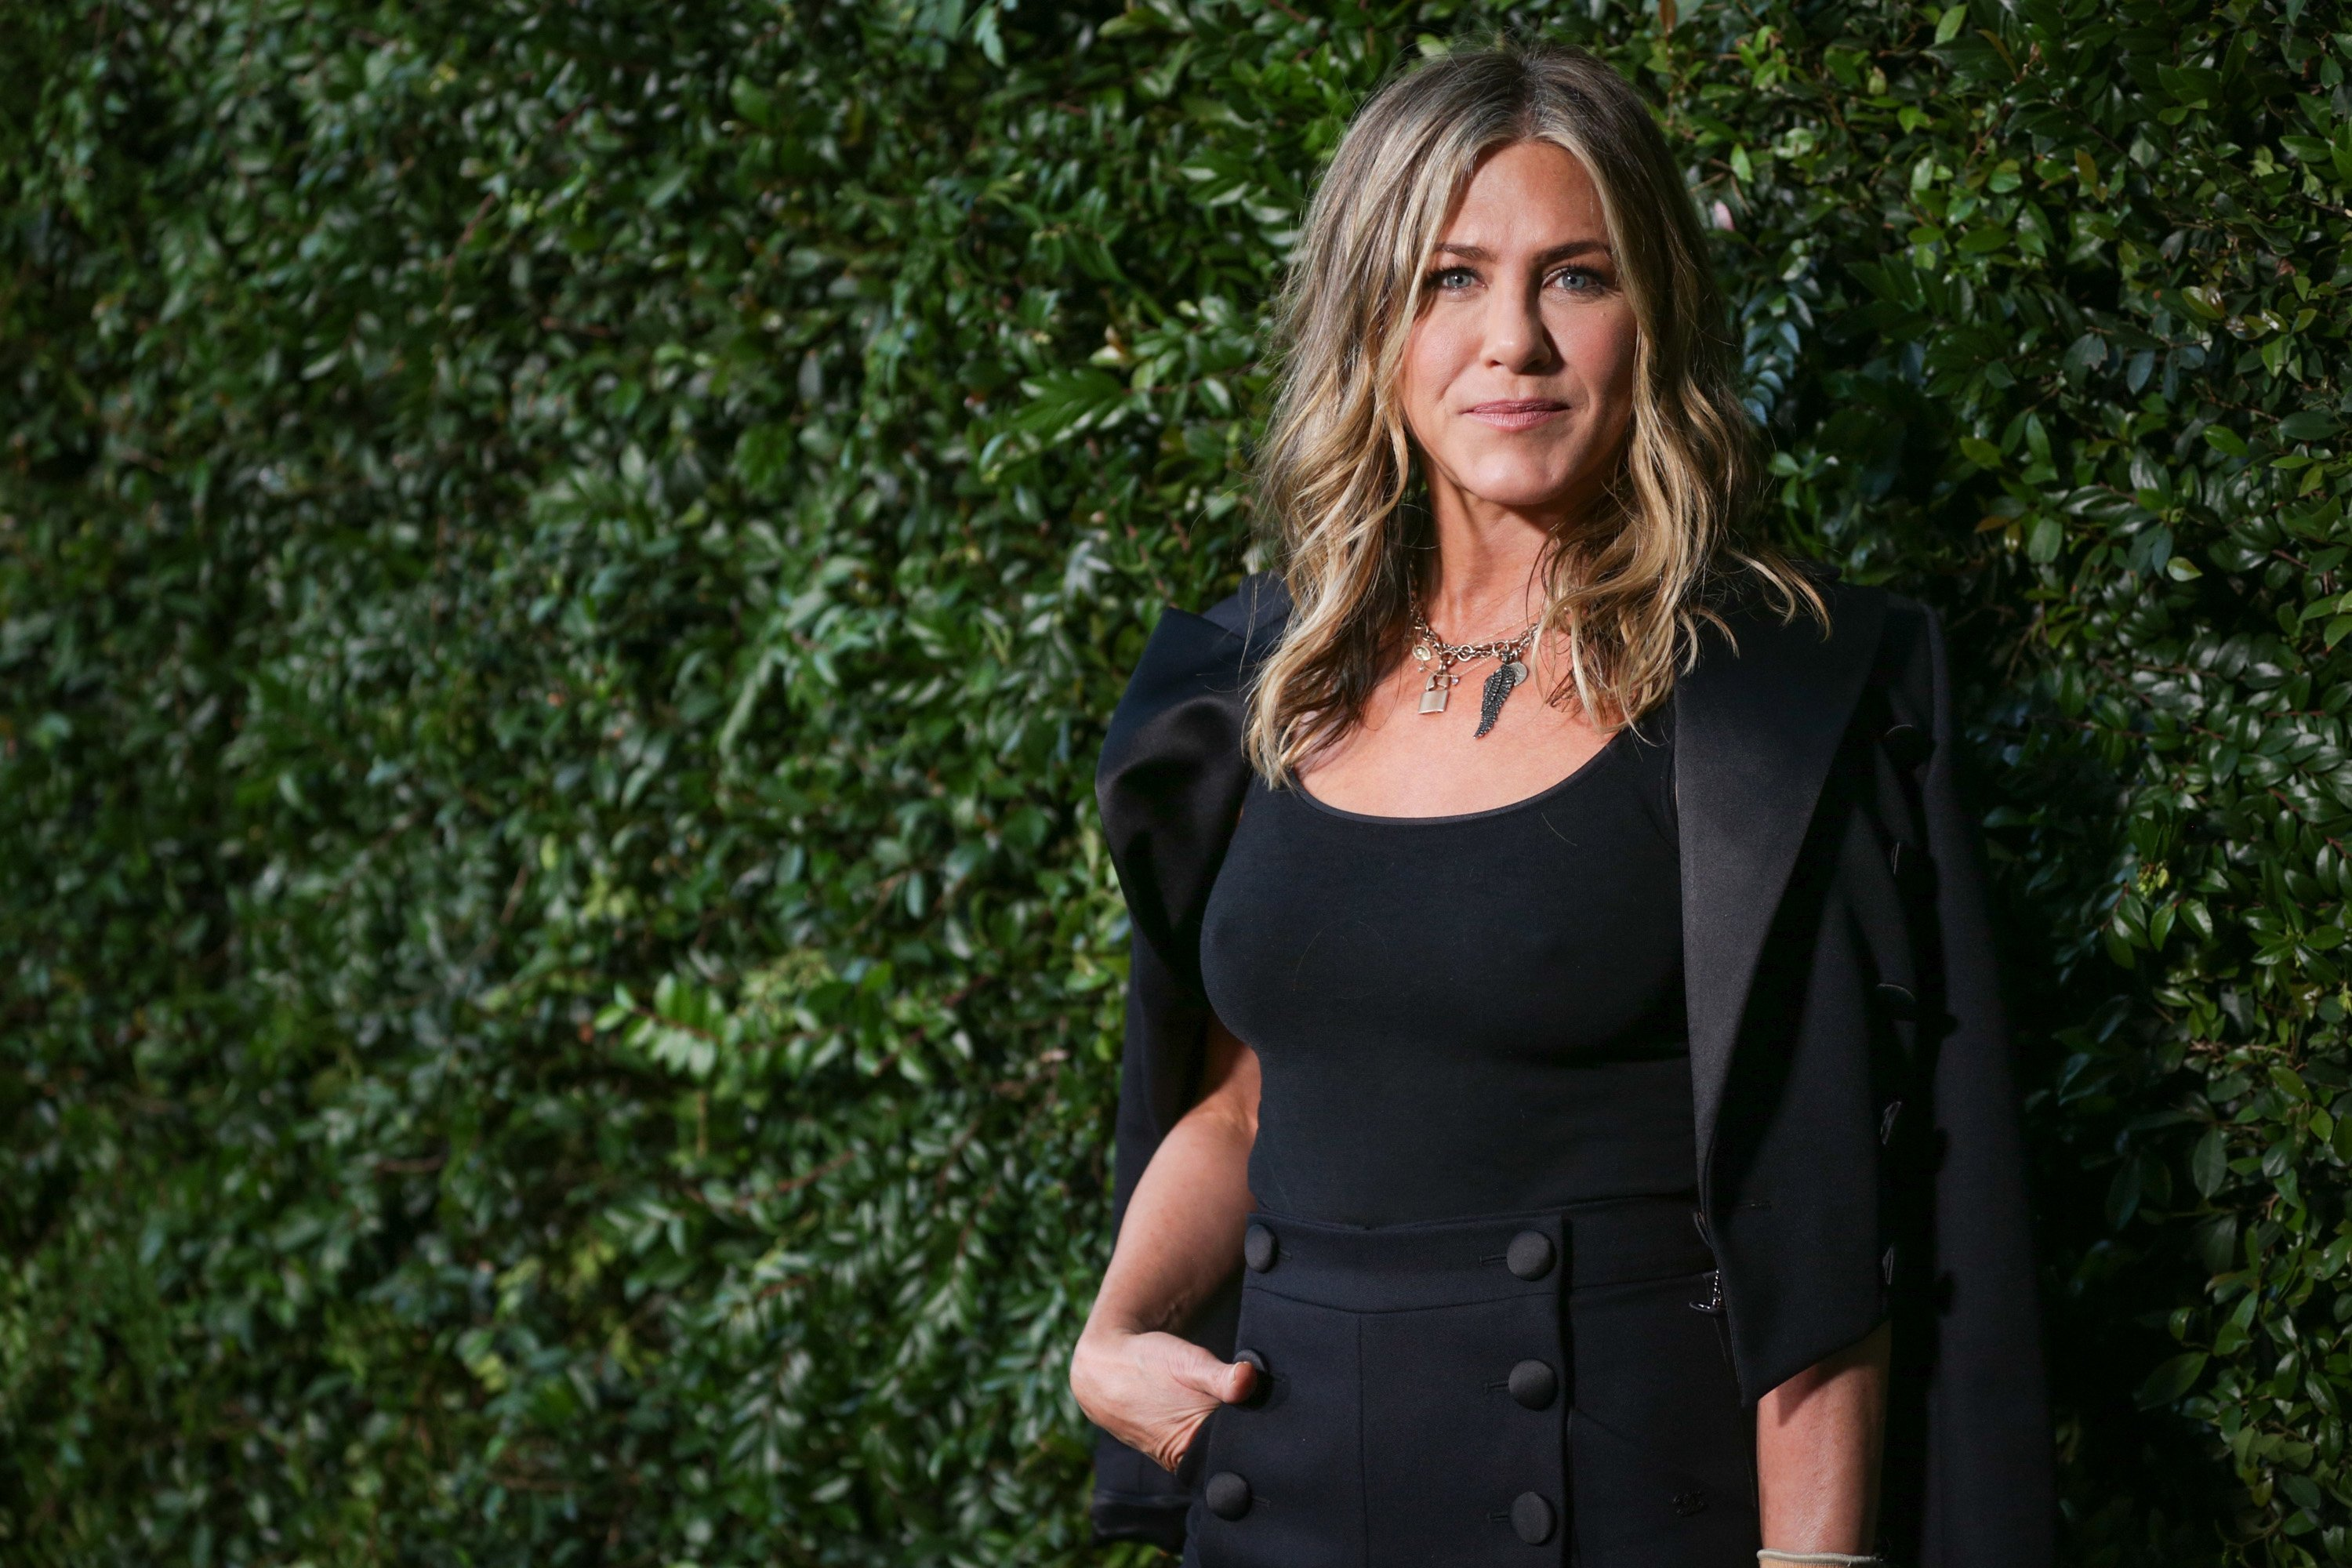 Jennifer Aniston broke Instagram with her debut